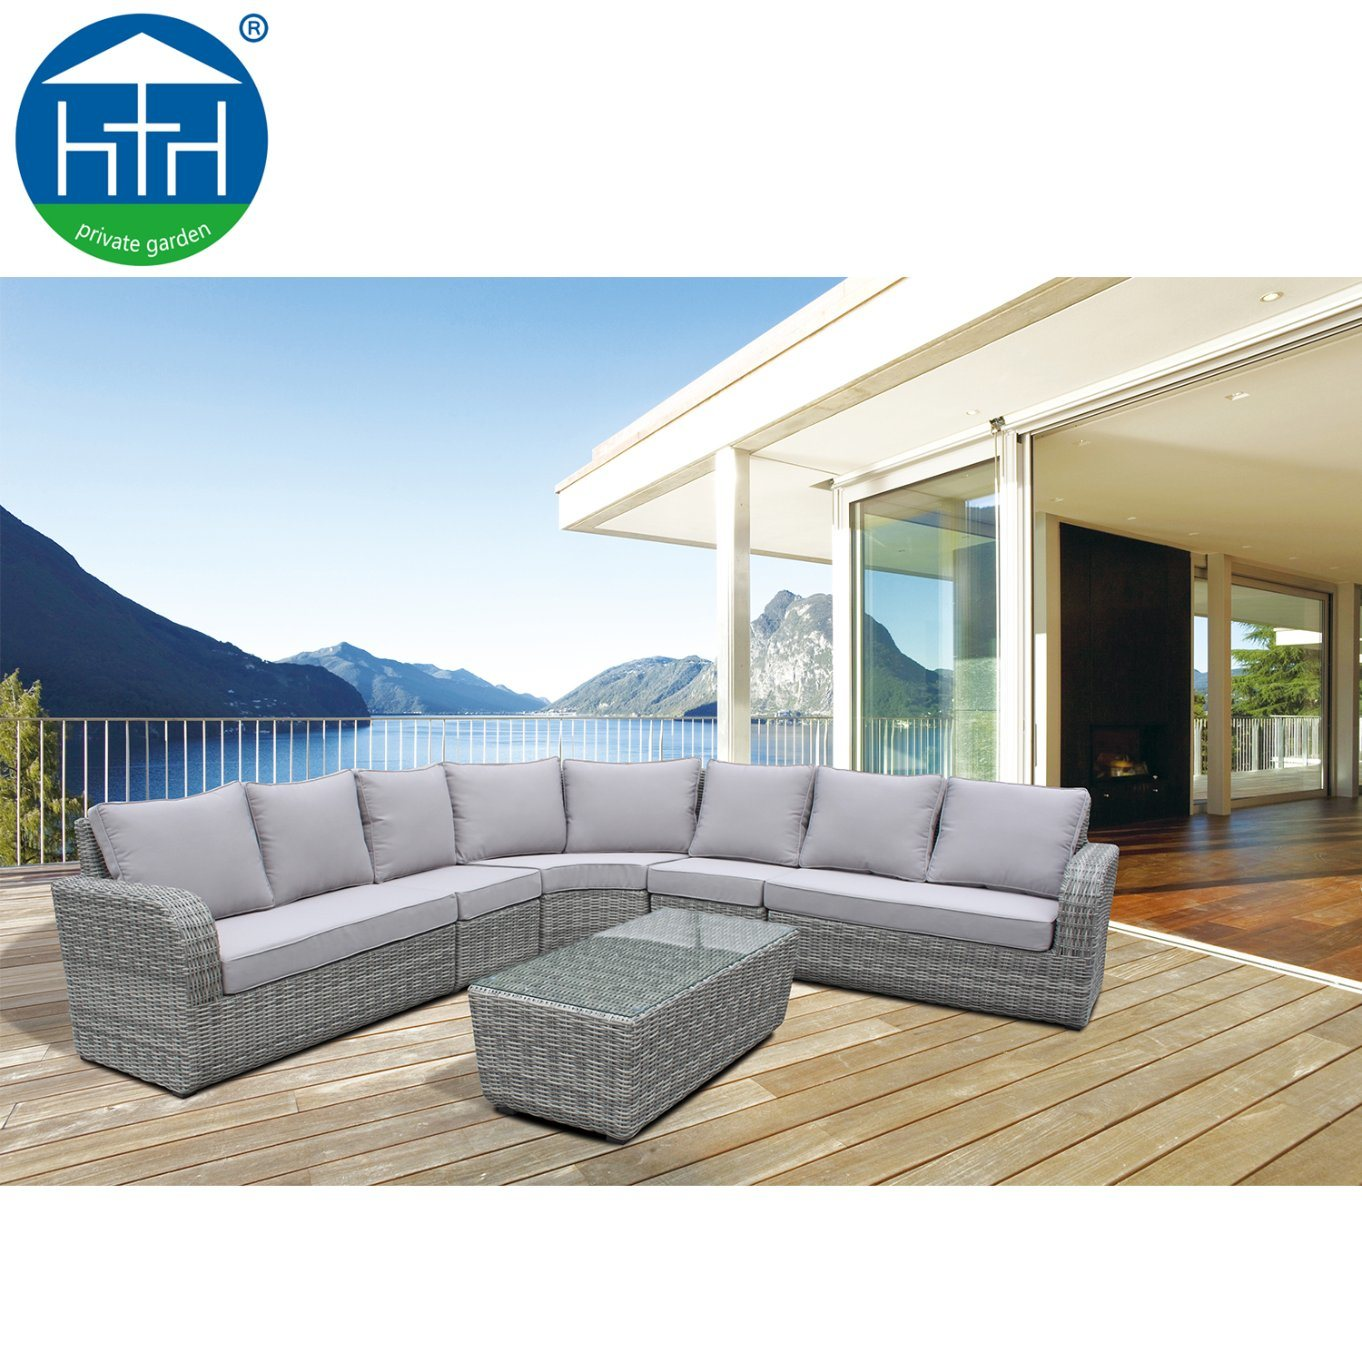 Picture of: 2019 Big Lots Outdoor Rattan Furniture Extra Large Sectional Sofa Set Patio Garden China Modular Wicker Sofa Outdoor Modular Sofa Made In China Com